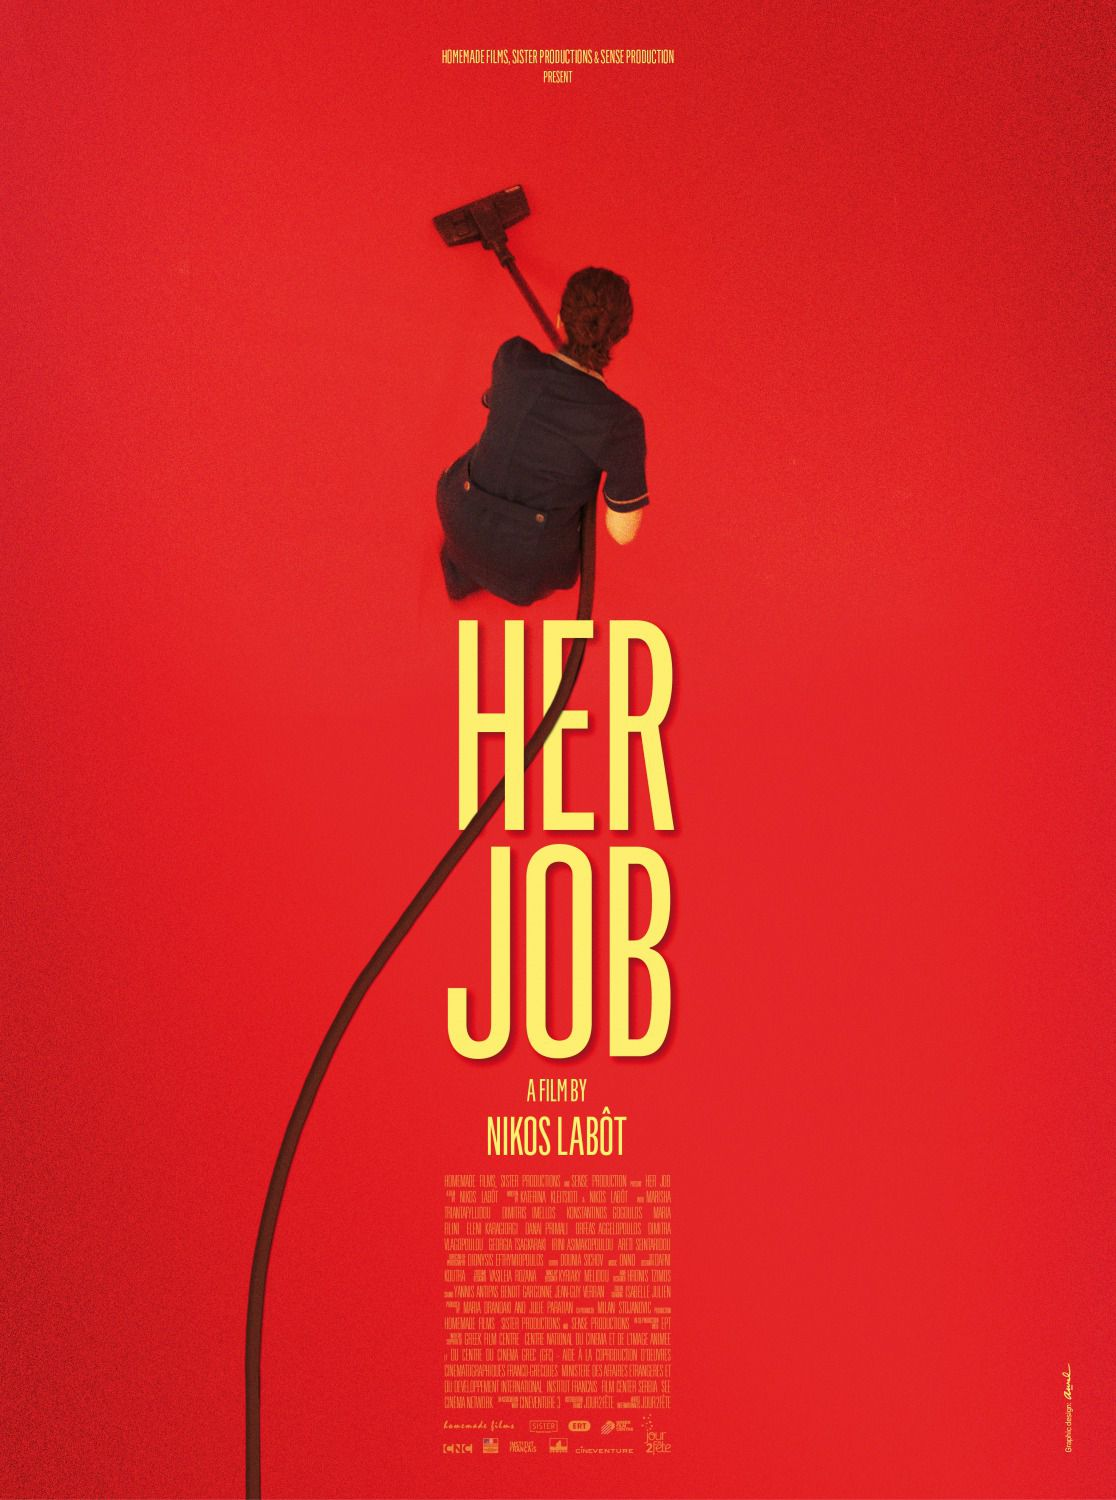 Her Job by Nikos Labot - film poster 2018  - colf - clear